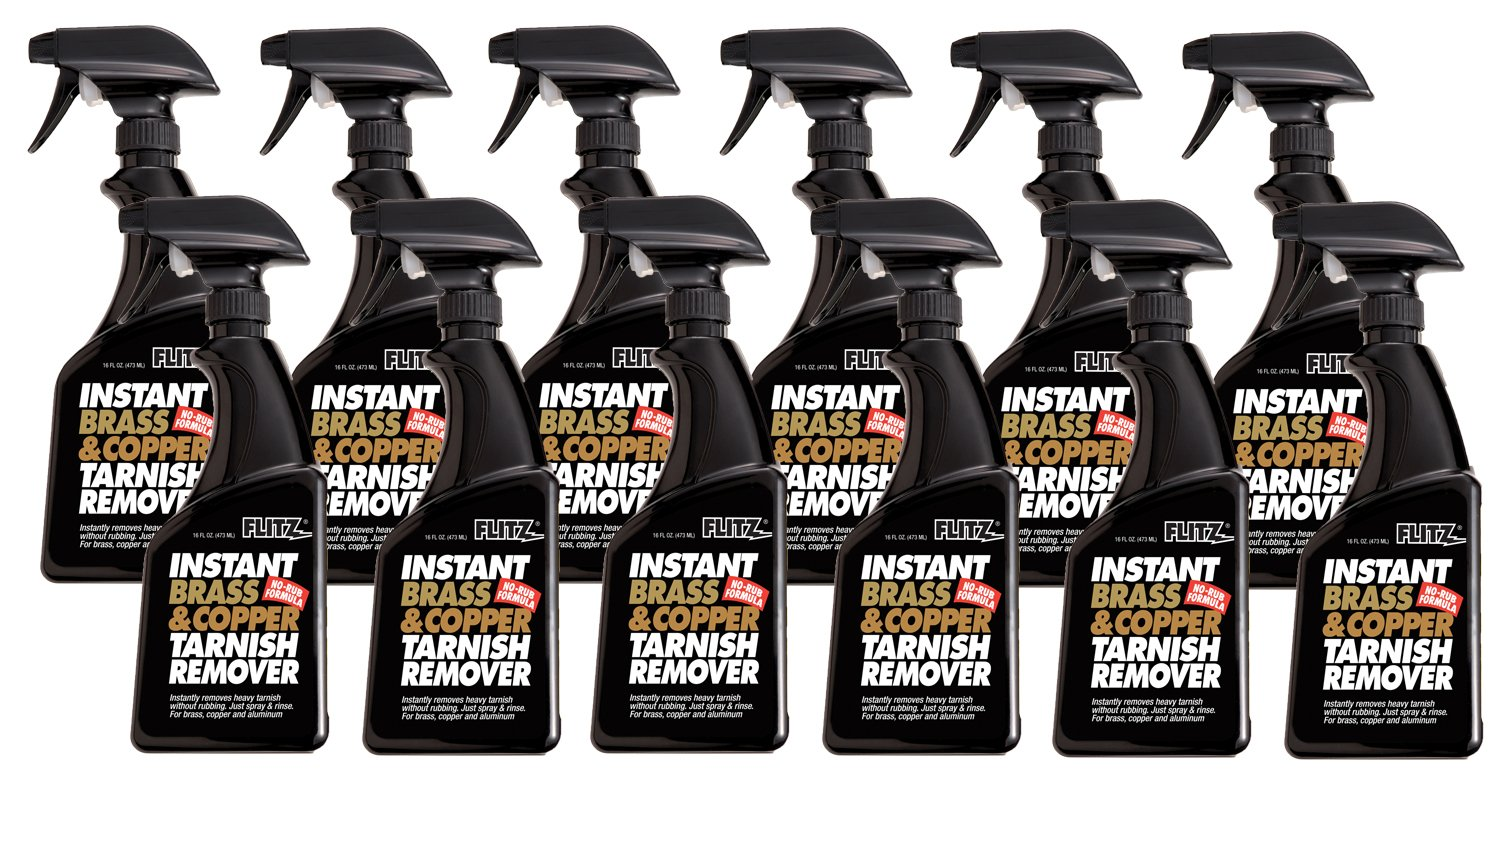 Flitz BC 01806-12A Instant Brass and Copper Tarnish Remover, 16 oz. Spray Bottle, 12-Pack